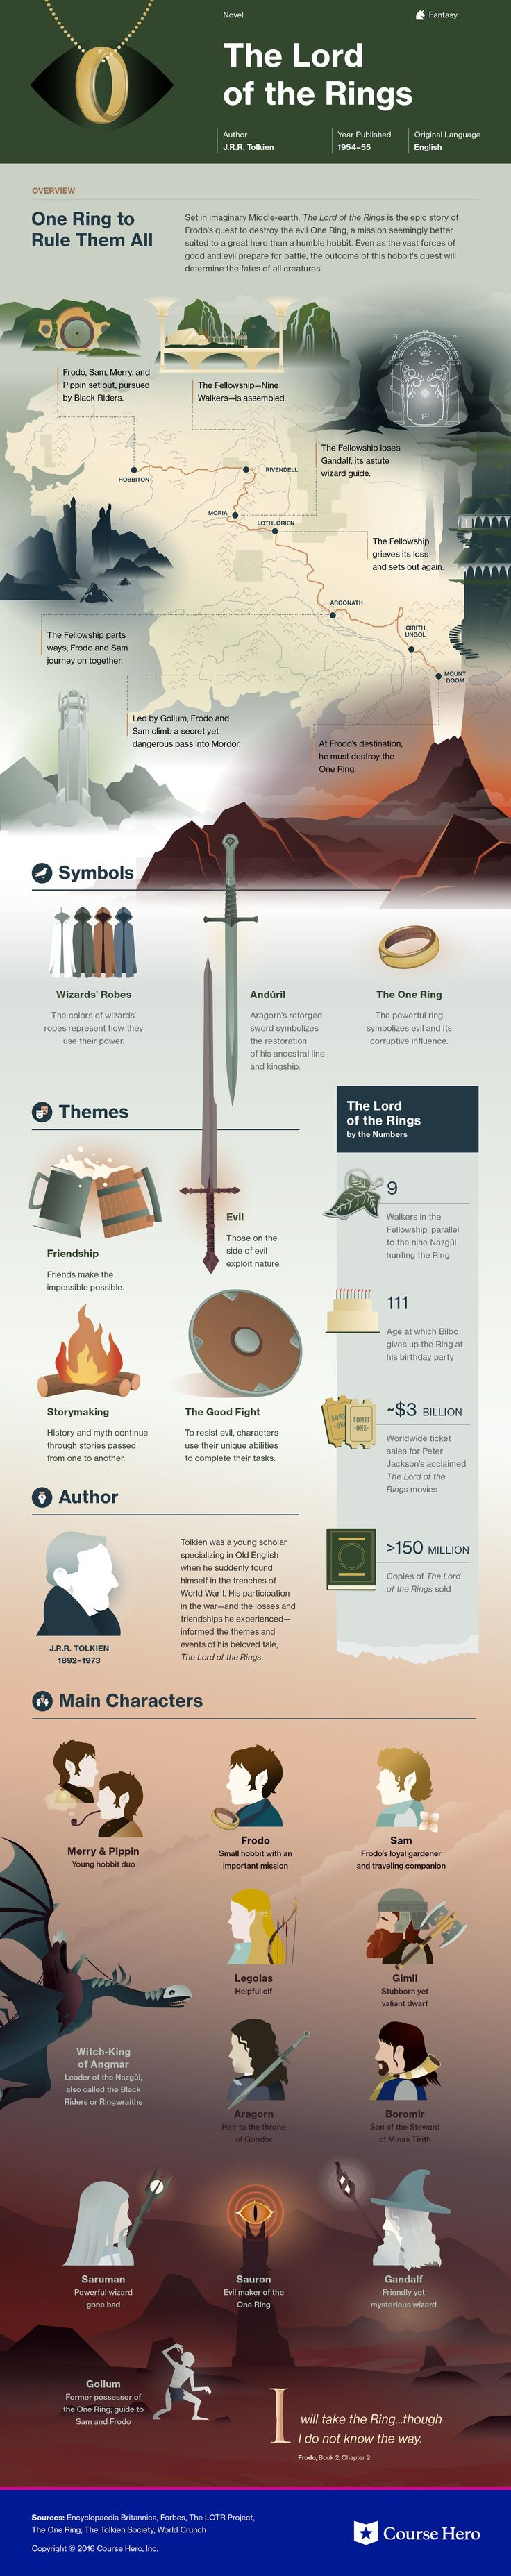 Pinterest - mutinelolita | The Lord of the Rings Infographic | Course Hero